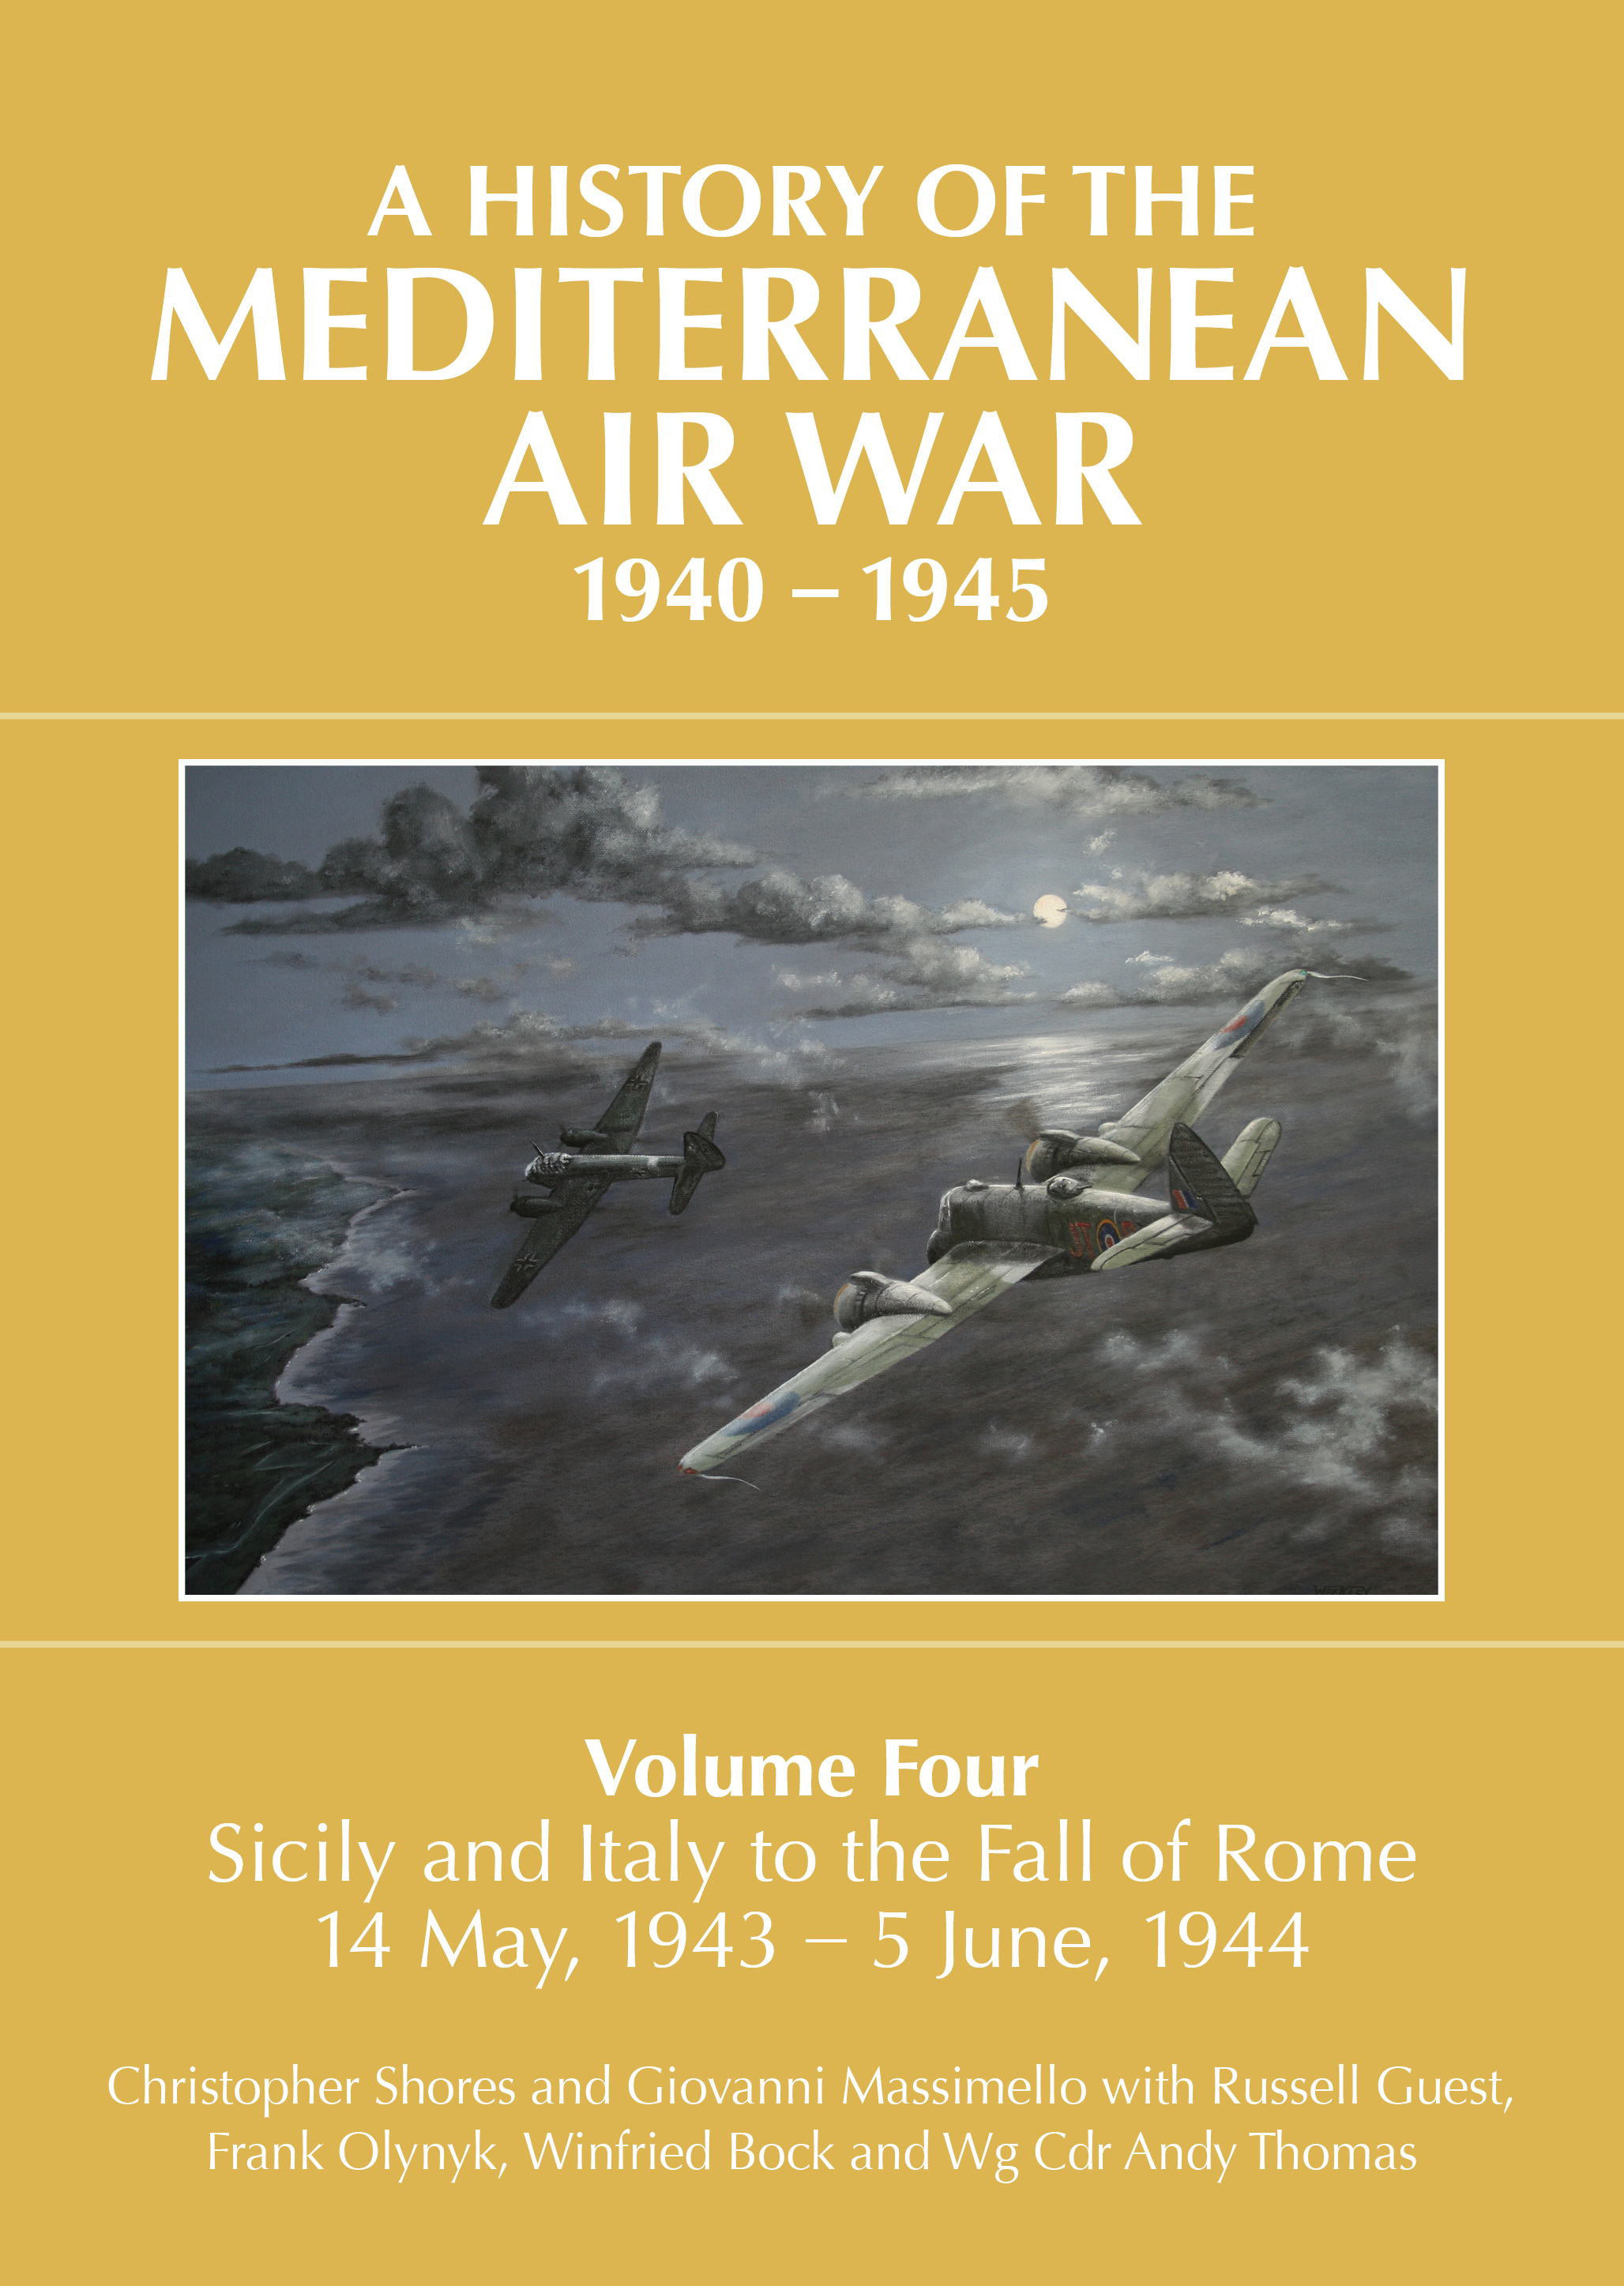 A History of the Mediterranean Air War, 1940-1945, Volume Four